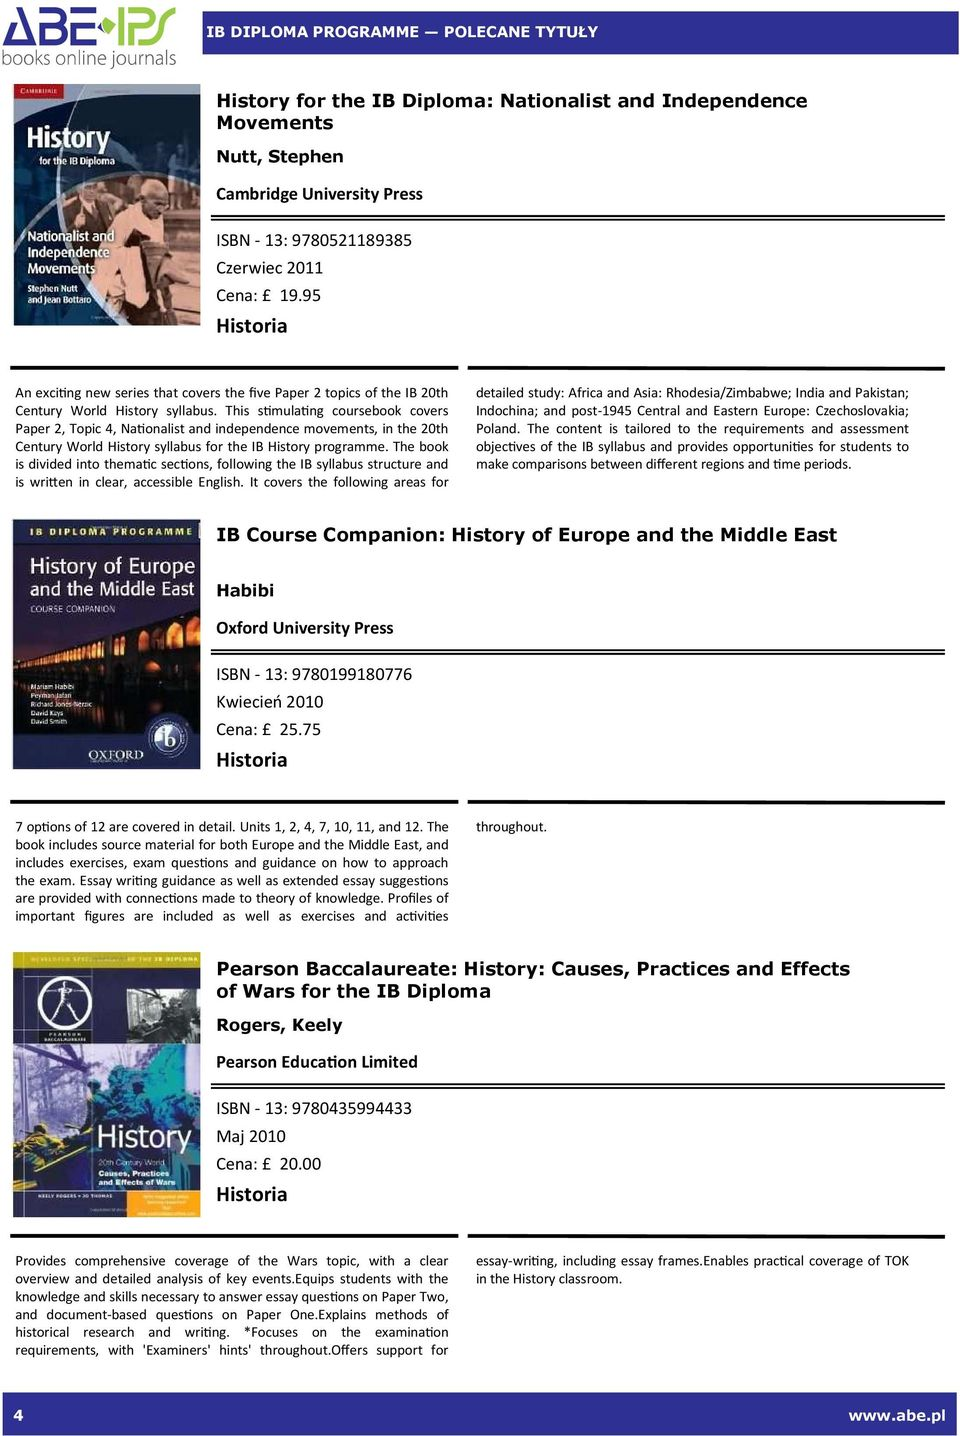 This s#mula#ng coursebook covers Paper 2, Topic 4, Na#onalist and independence movements, in the 20th Century World History syllabus for the IB History programme.